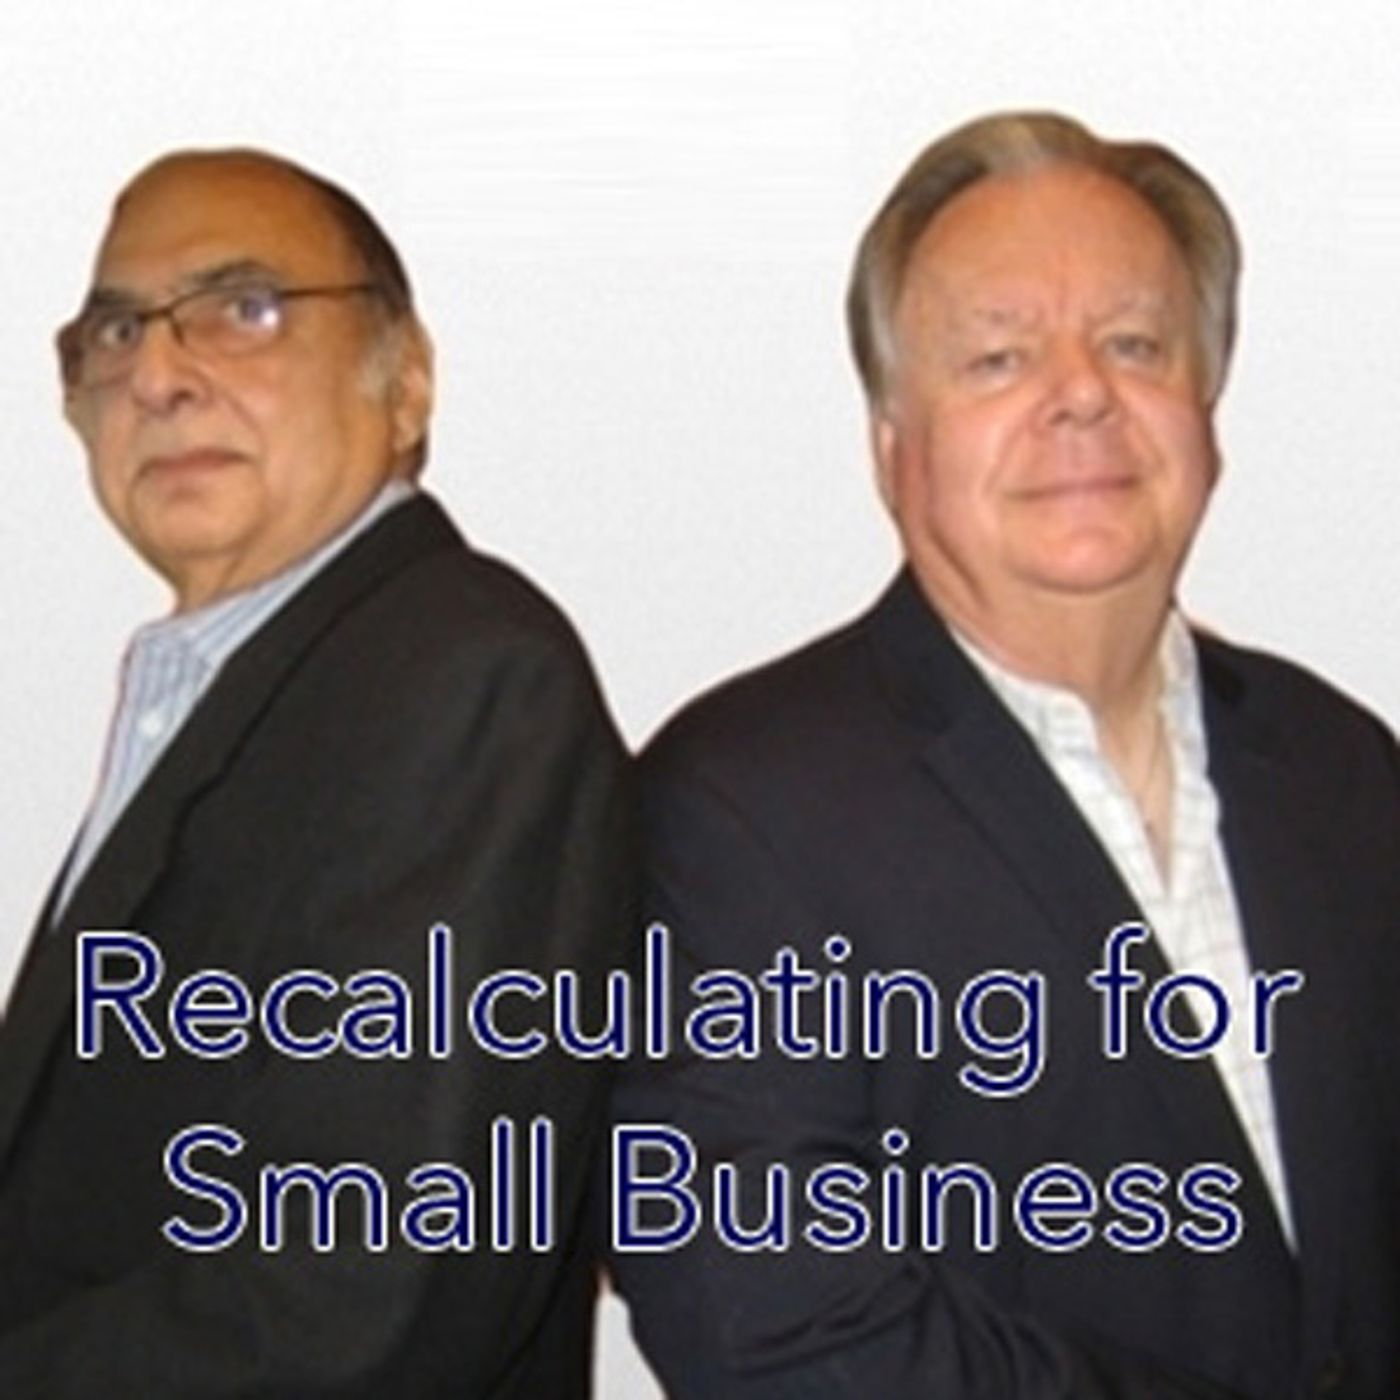 Recalculating For Small Business - Tom Shorma & Jeff Kreisler